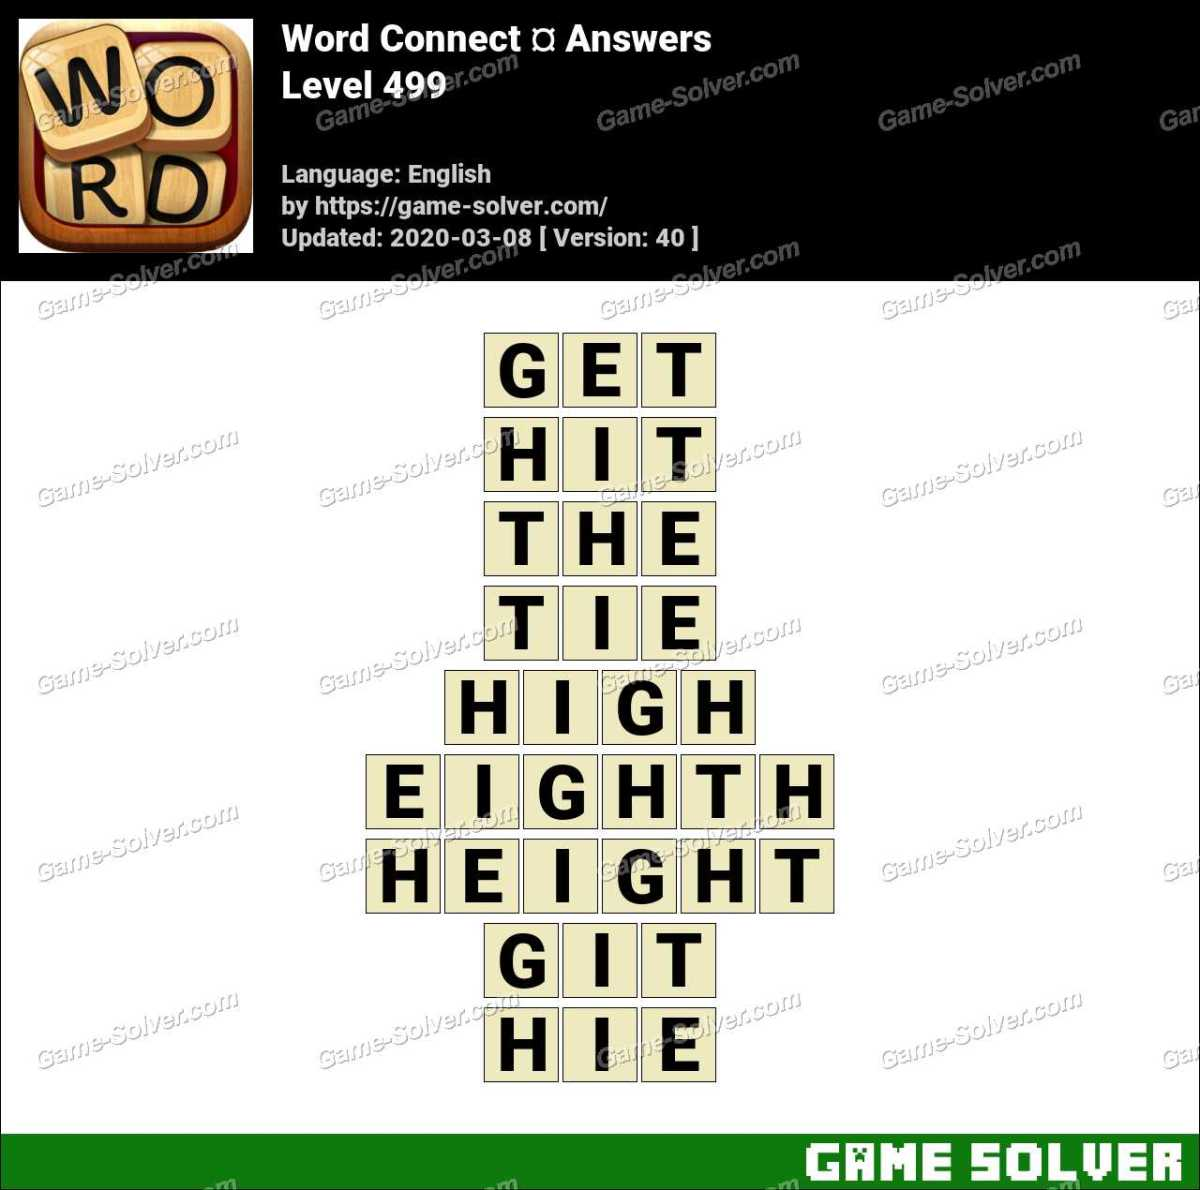 Word Connect Level 499 Answers